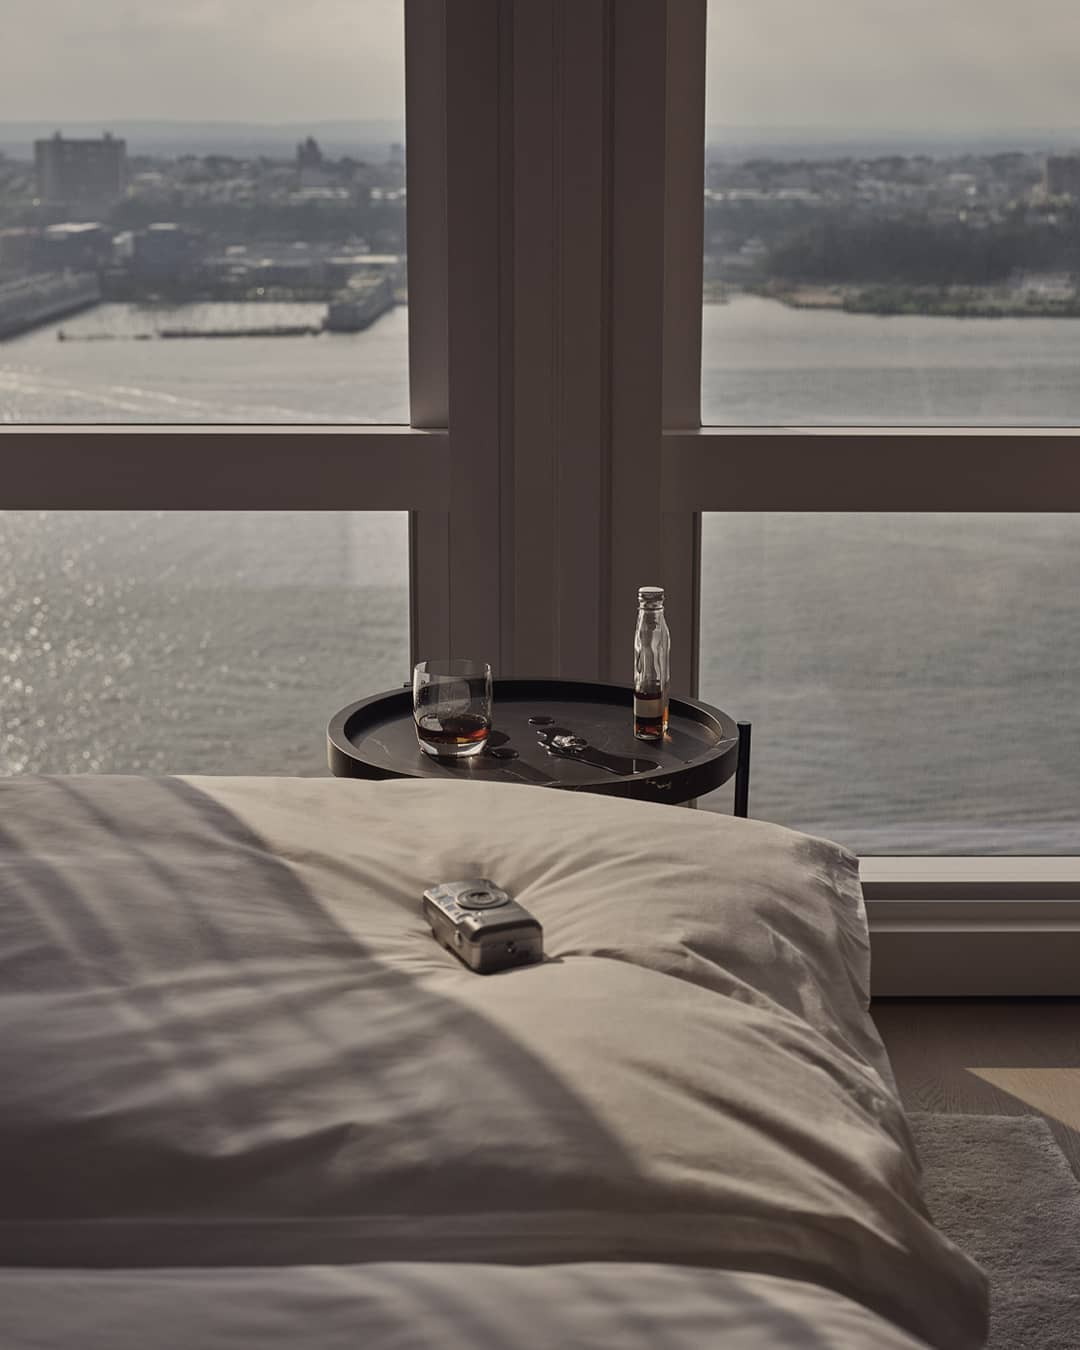 equinox hotel room closeup of bed in front of floor to ceiling windows showing river view